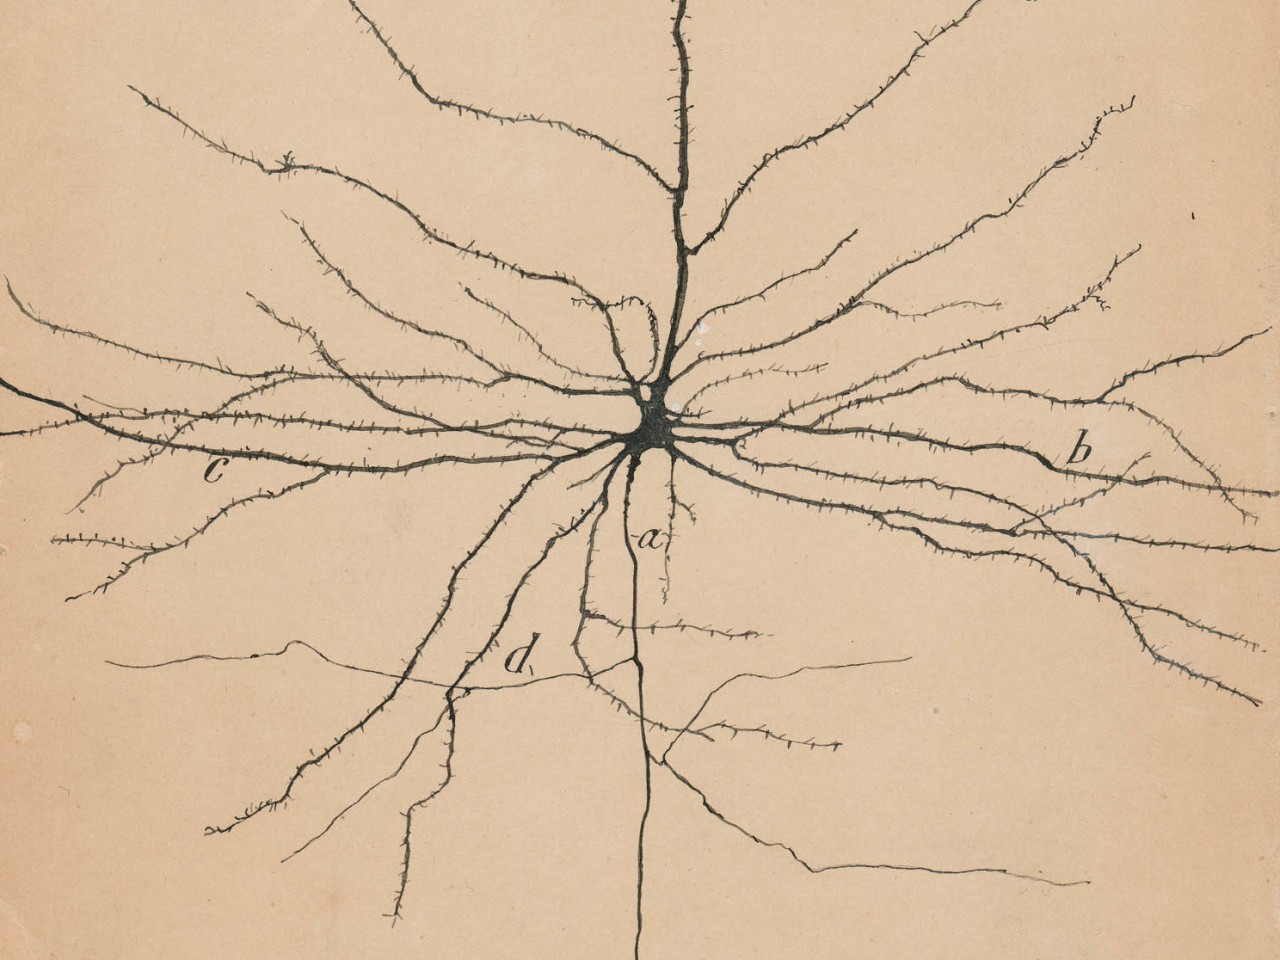 NPR: Art Exhibition Celebrates Drawings By The Founder Of Modern Neuroscience